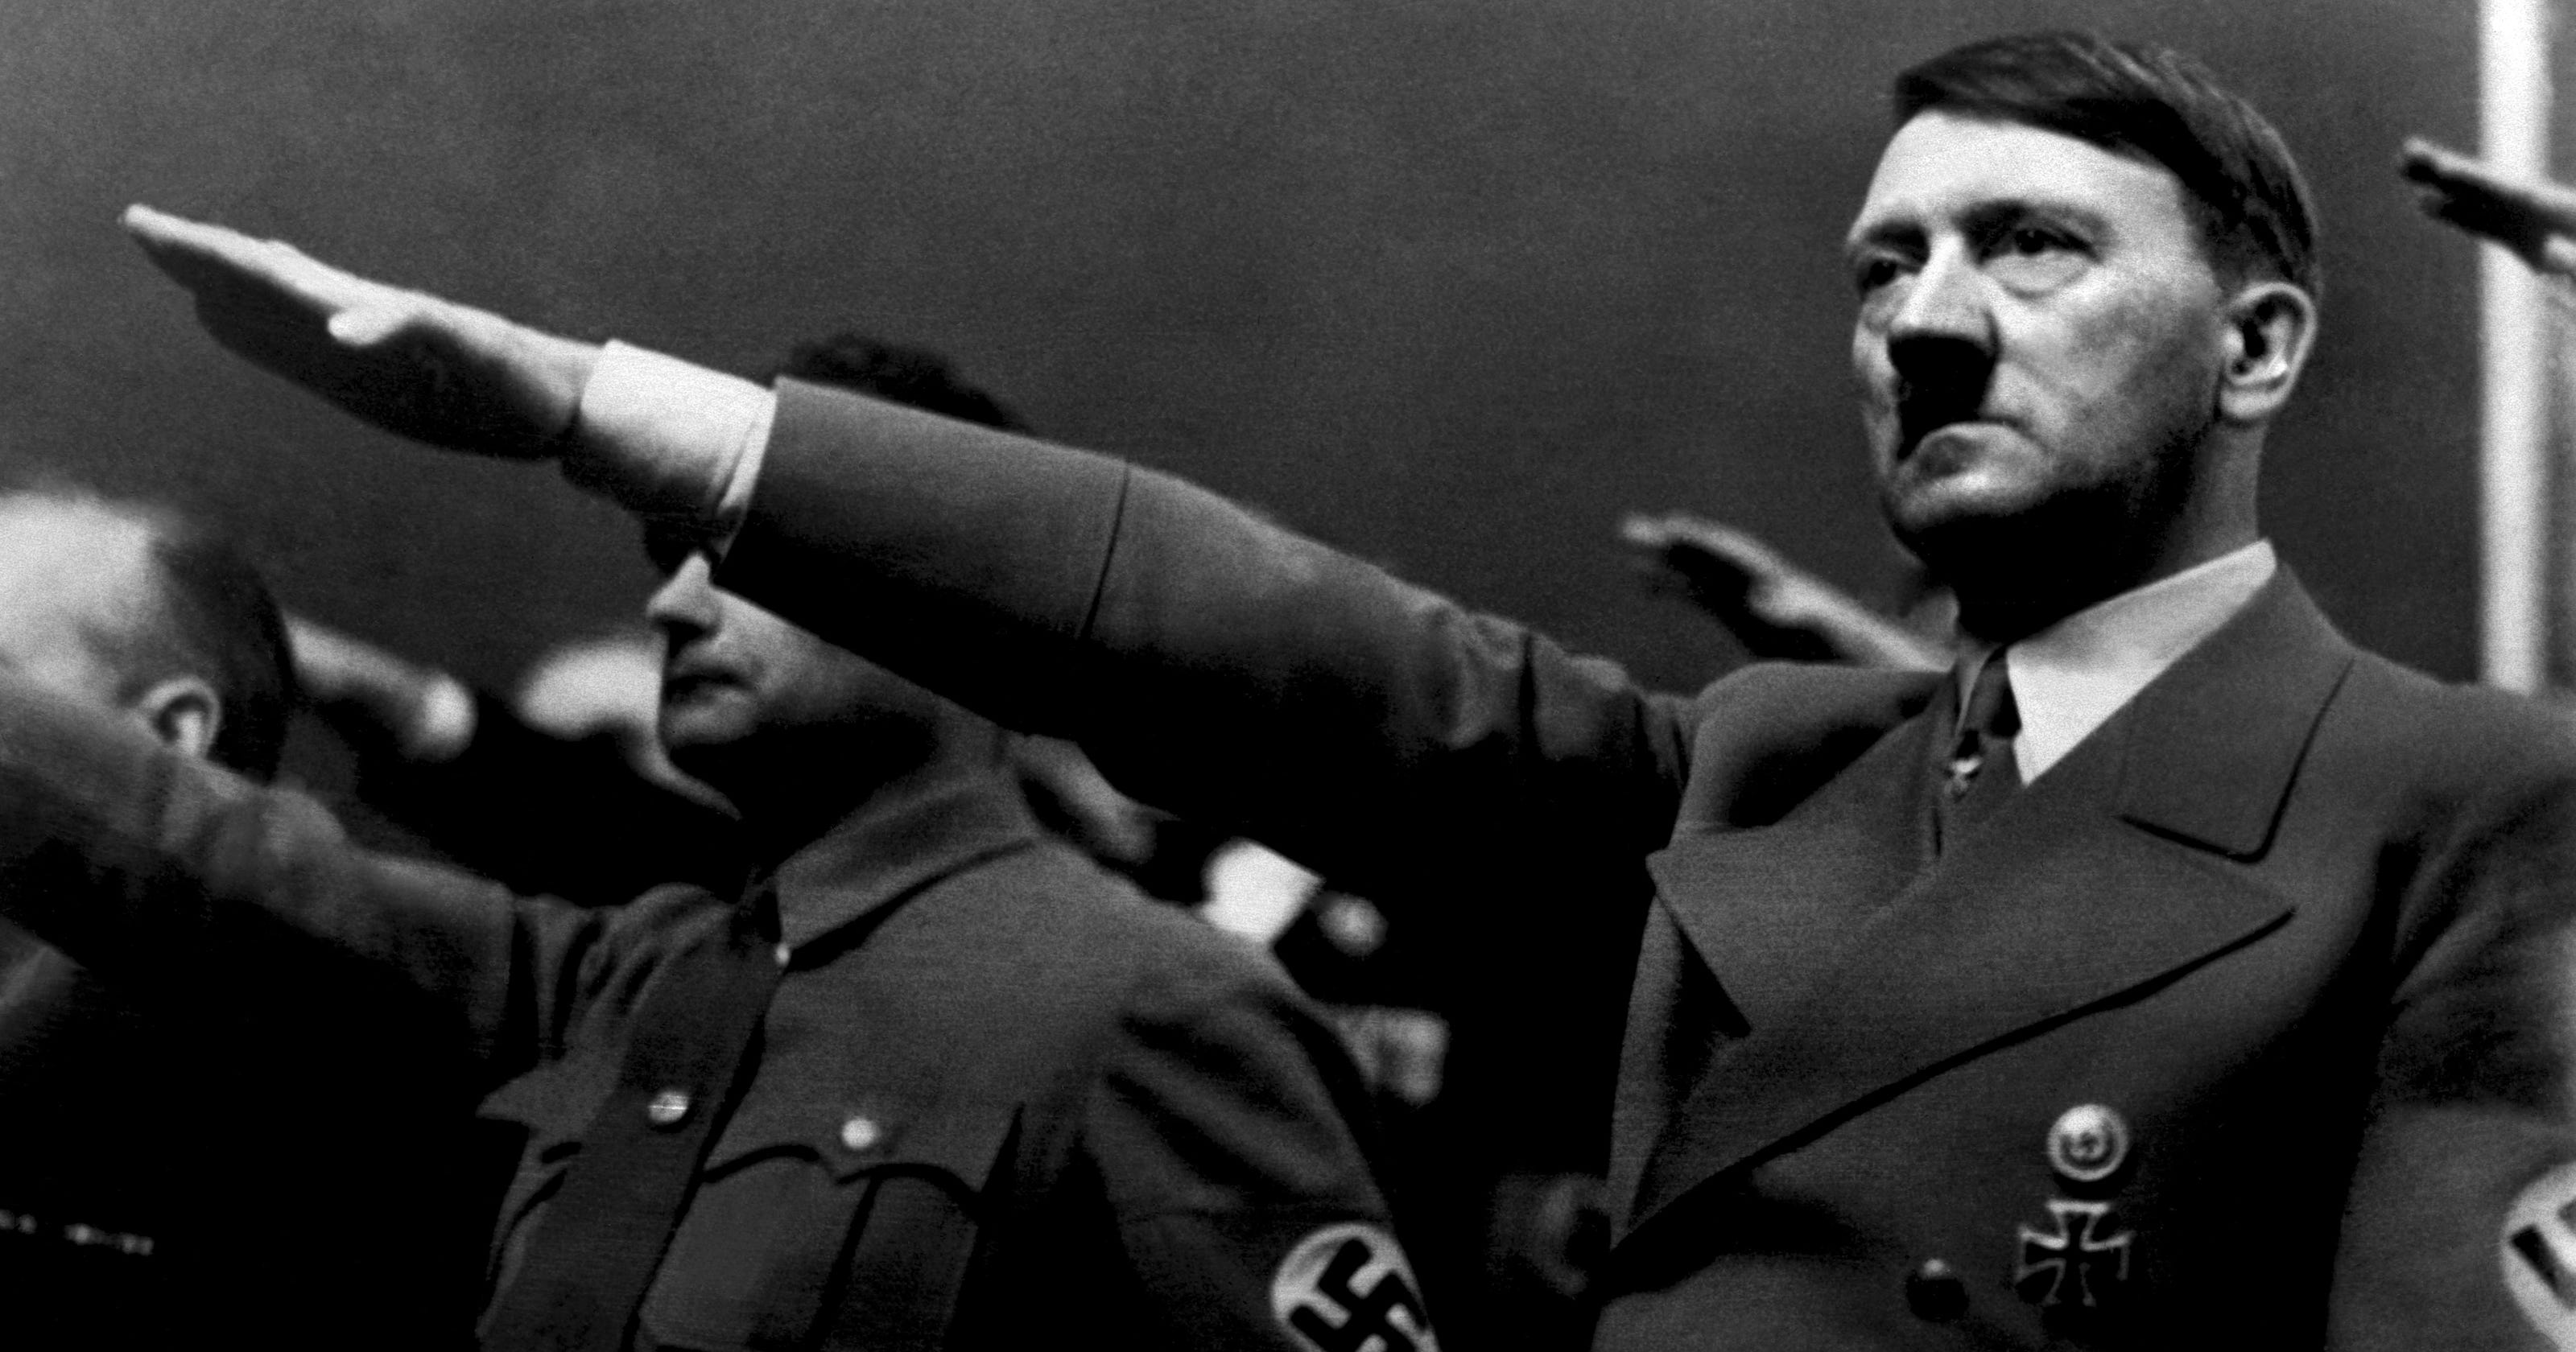 adolf hitler one of the most talented Adolf hitler, the leader of germany's nazi party, was one of the most powerful and notorious dictators of the 20th century this website uses cookies for analytics, personalization, and advertising.